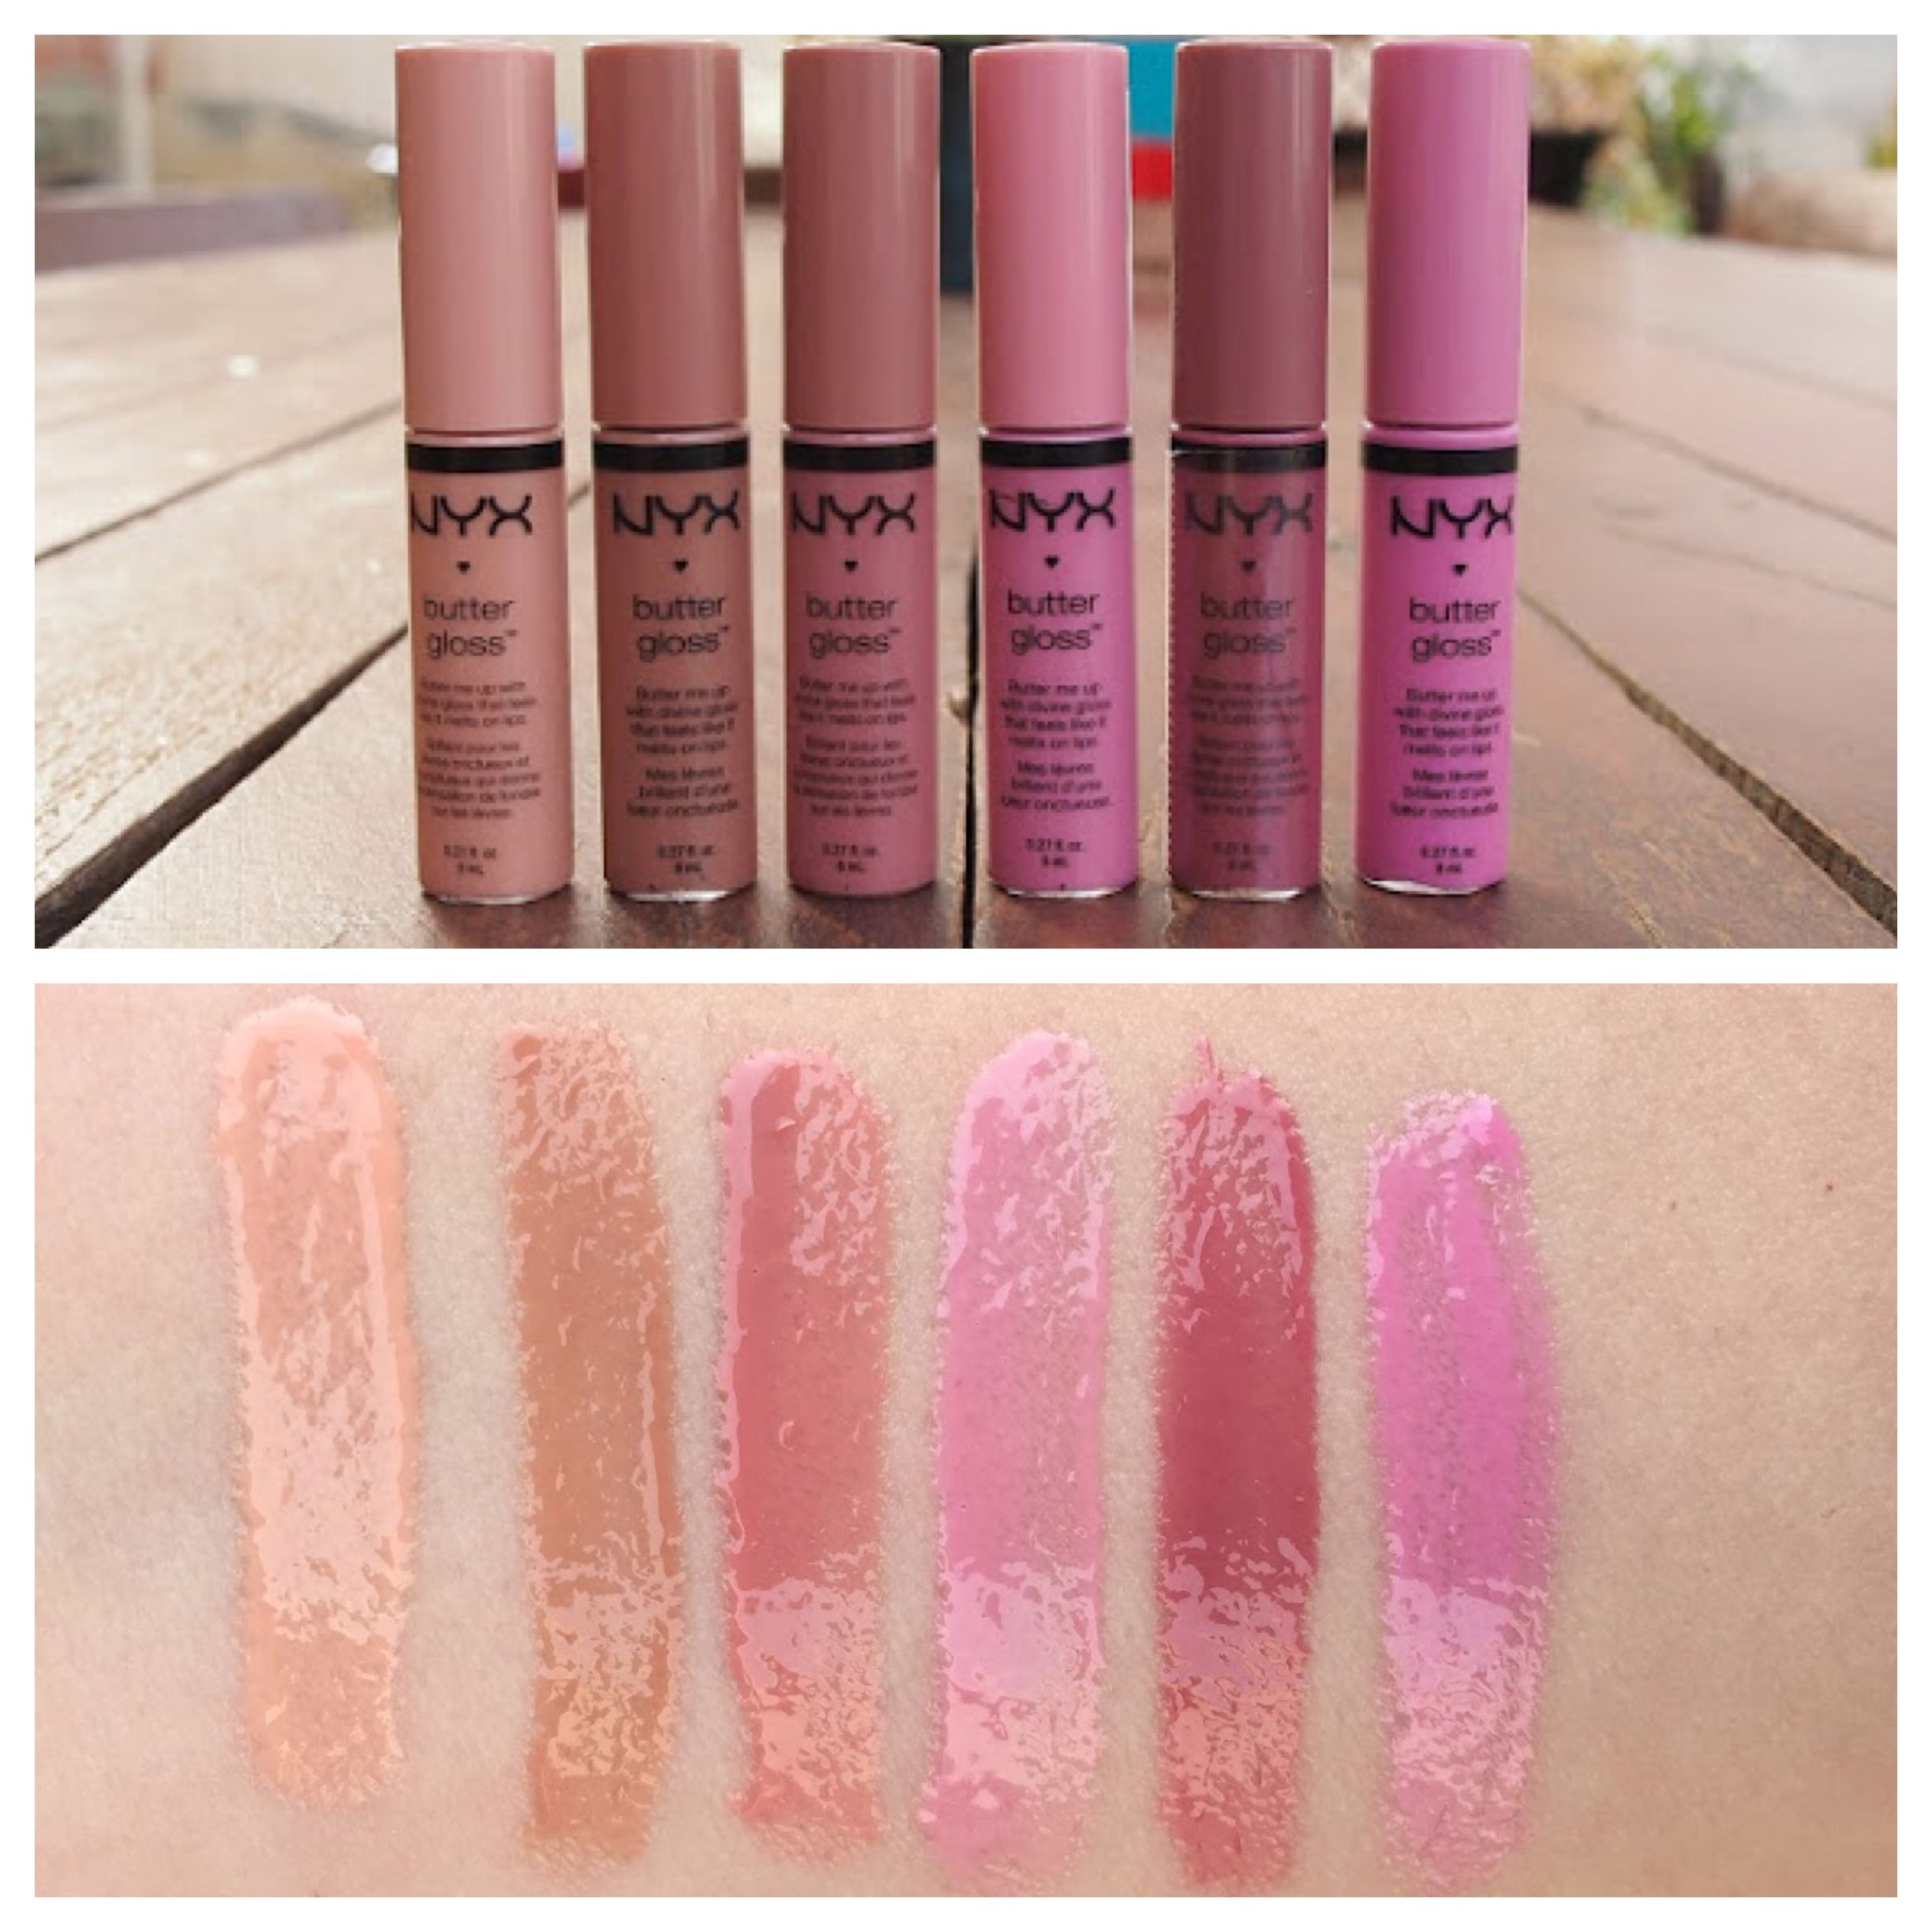 Nyx Butter Gloss Review And Swatches 2 0 Updated With Images